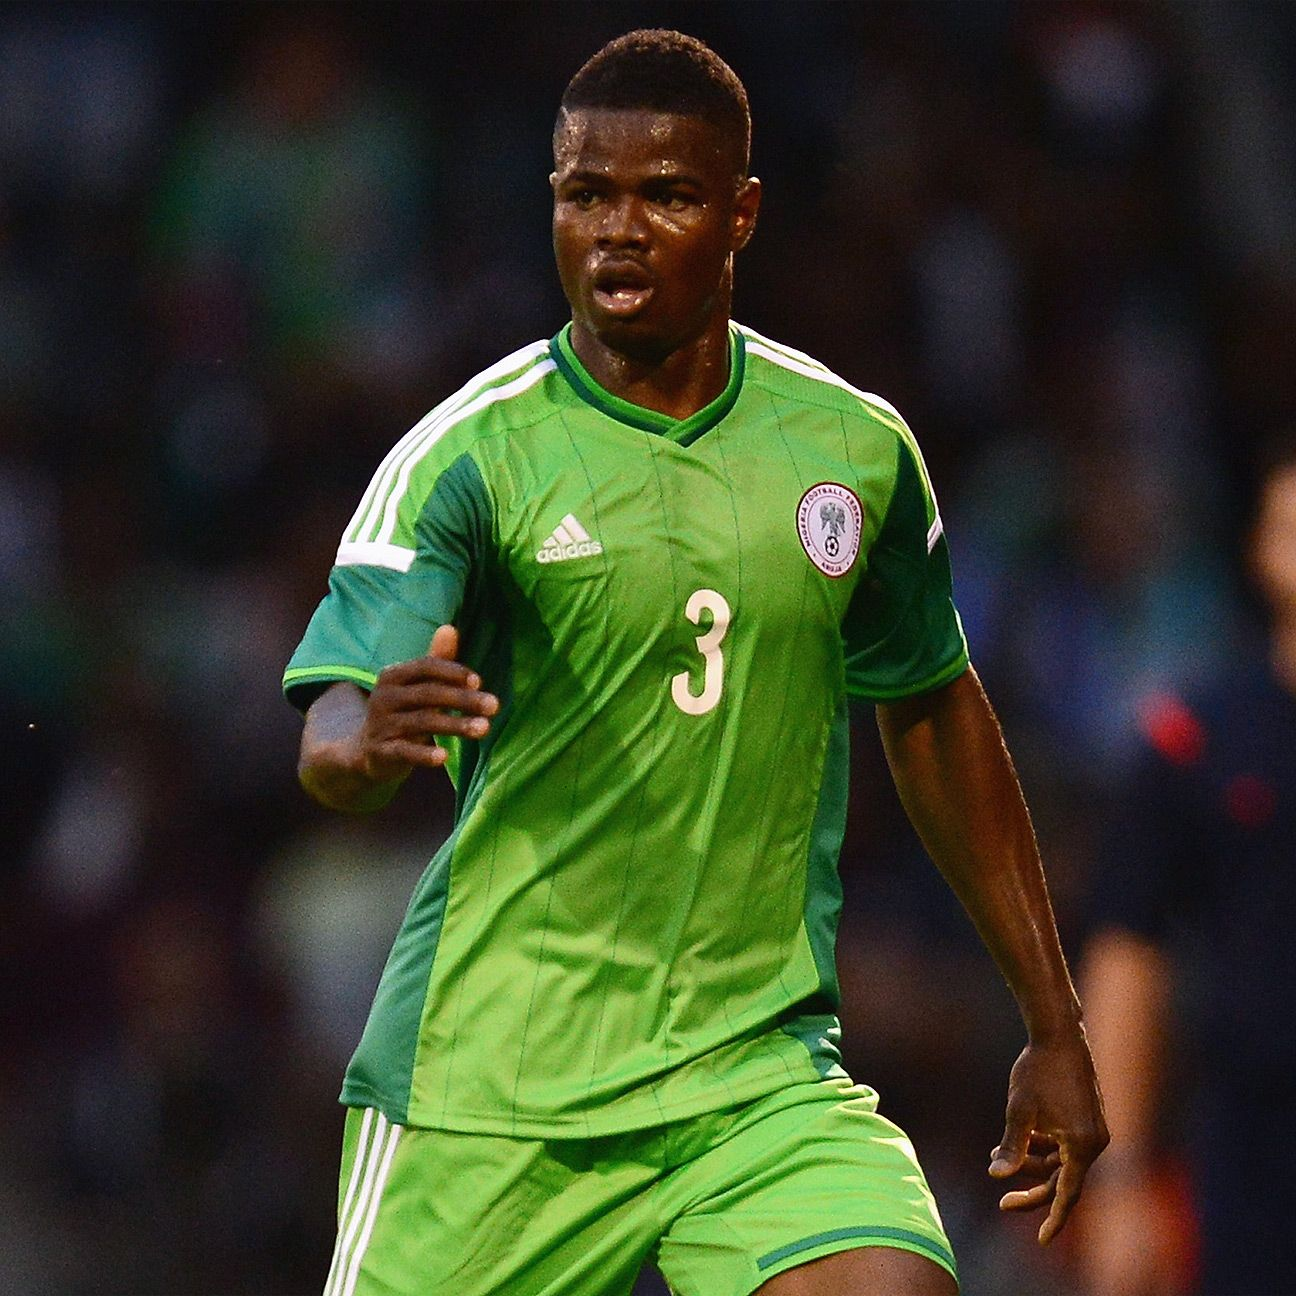 Nigeria's Elderson Echiejile will have his hands full with Christian Bassogog of Cameroon.